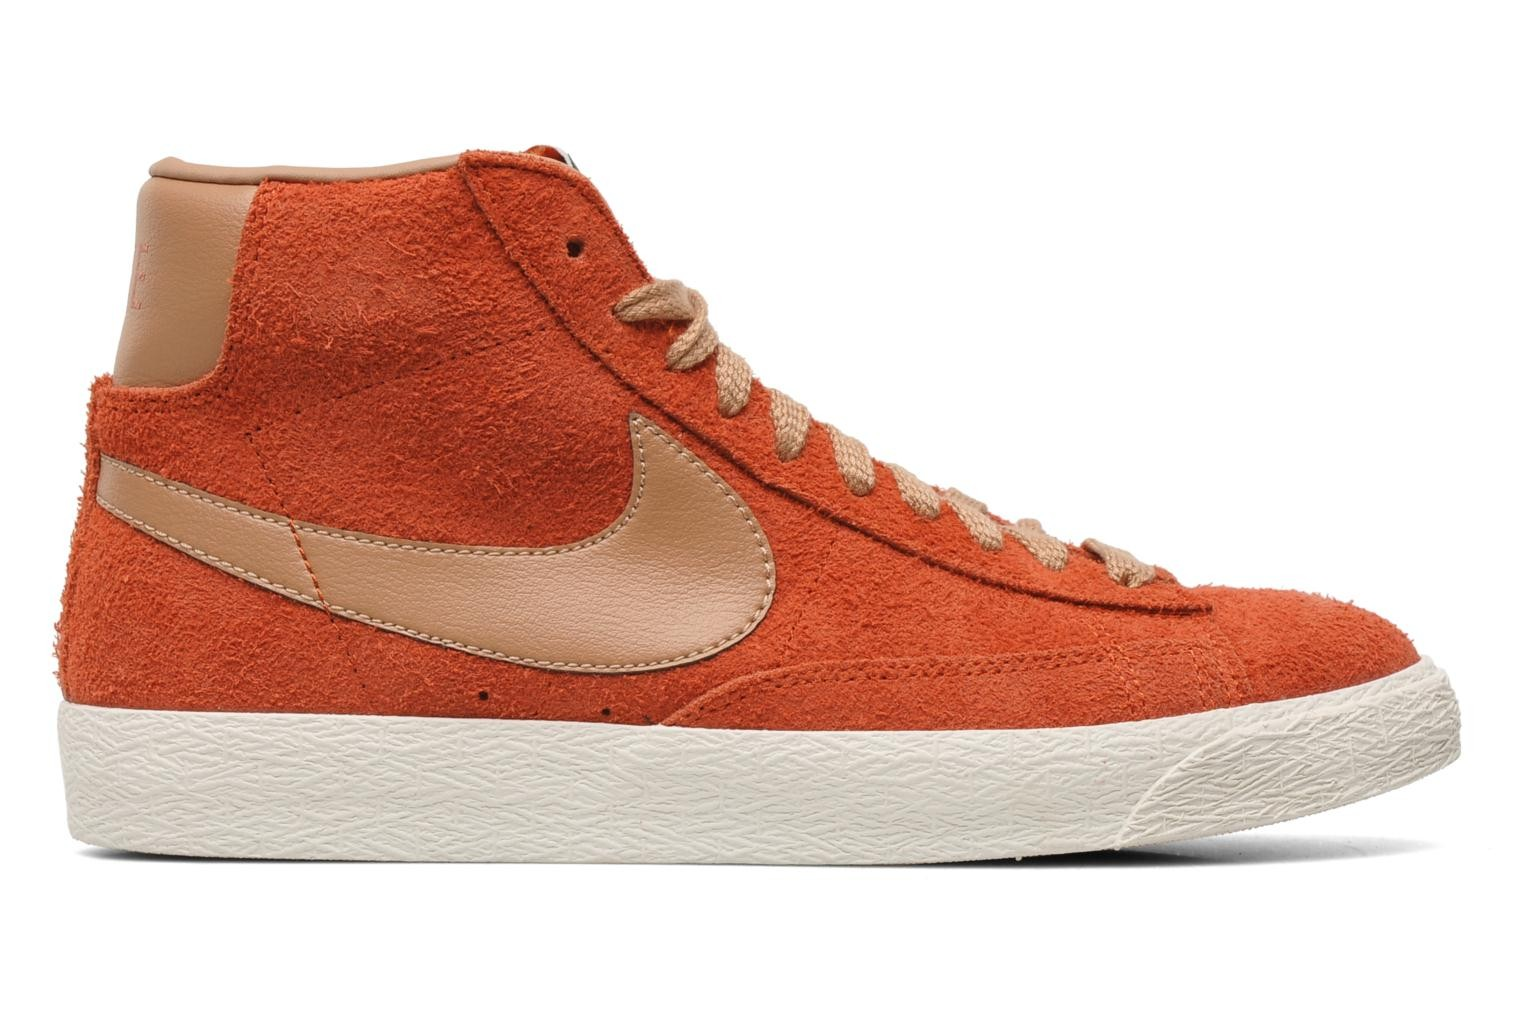 Nike Blazer Mid Prm Vintage Suede Rust Factor Dusted Clay Sail Men's Shoe